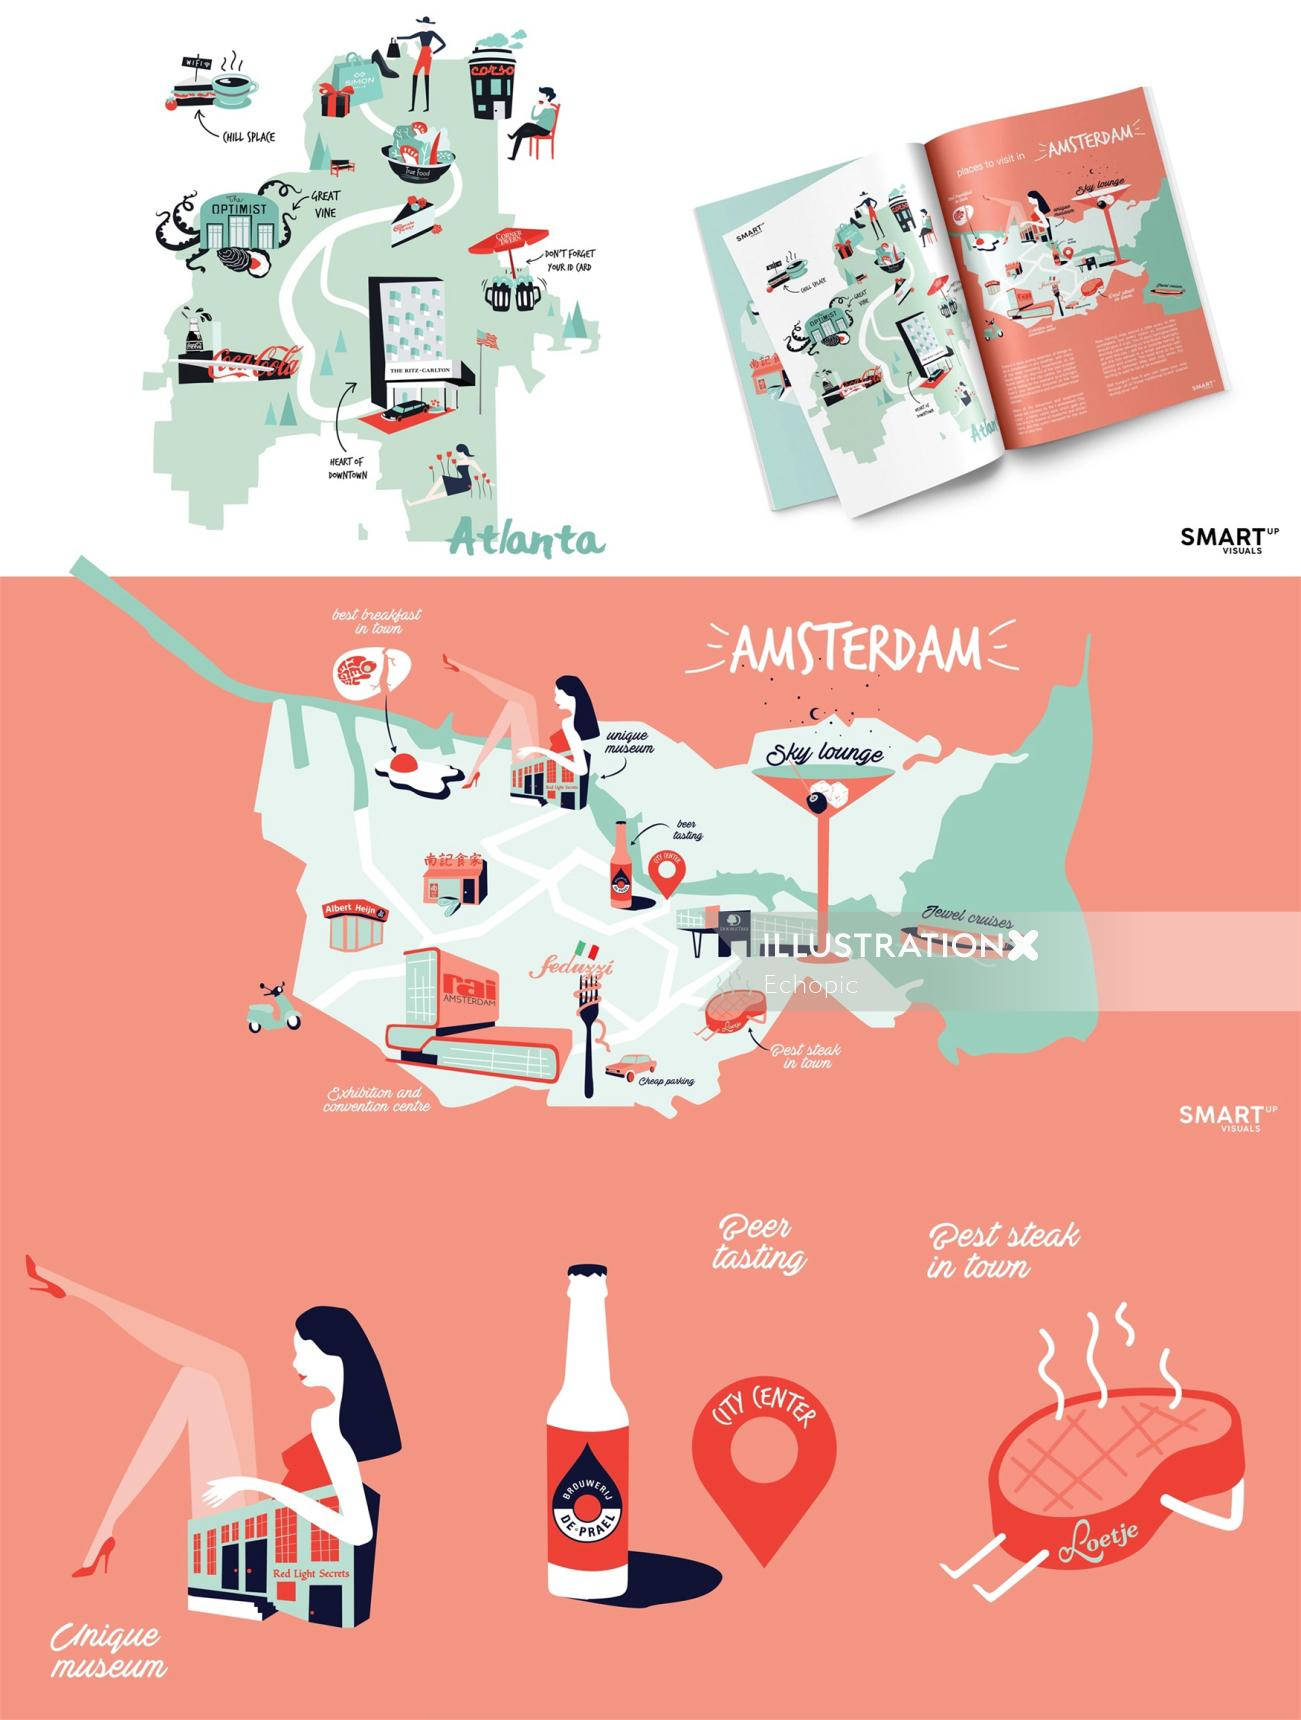 Graphic collage of map and books